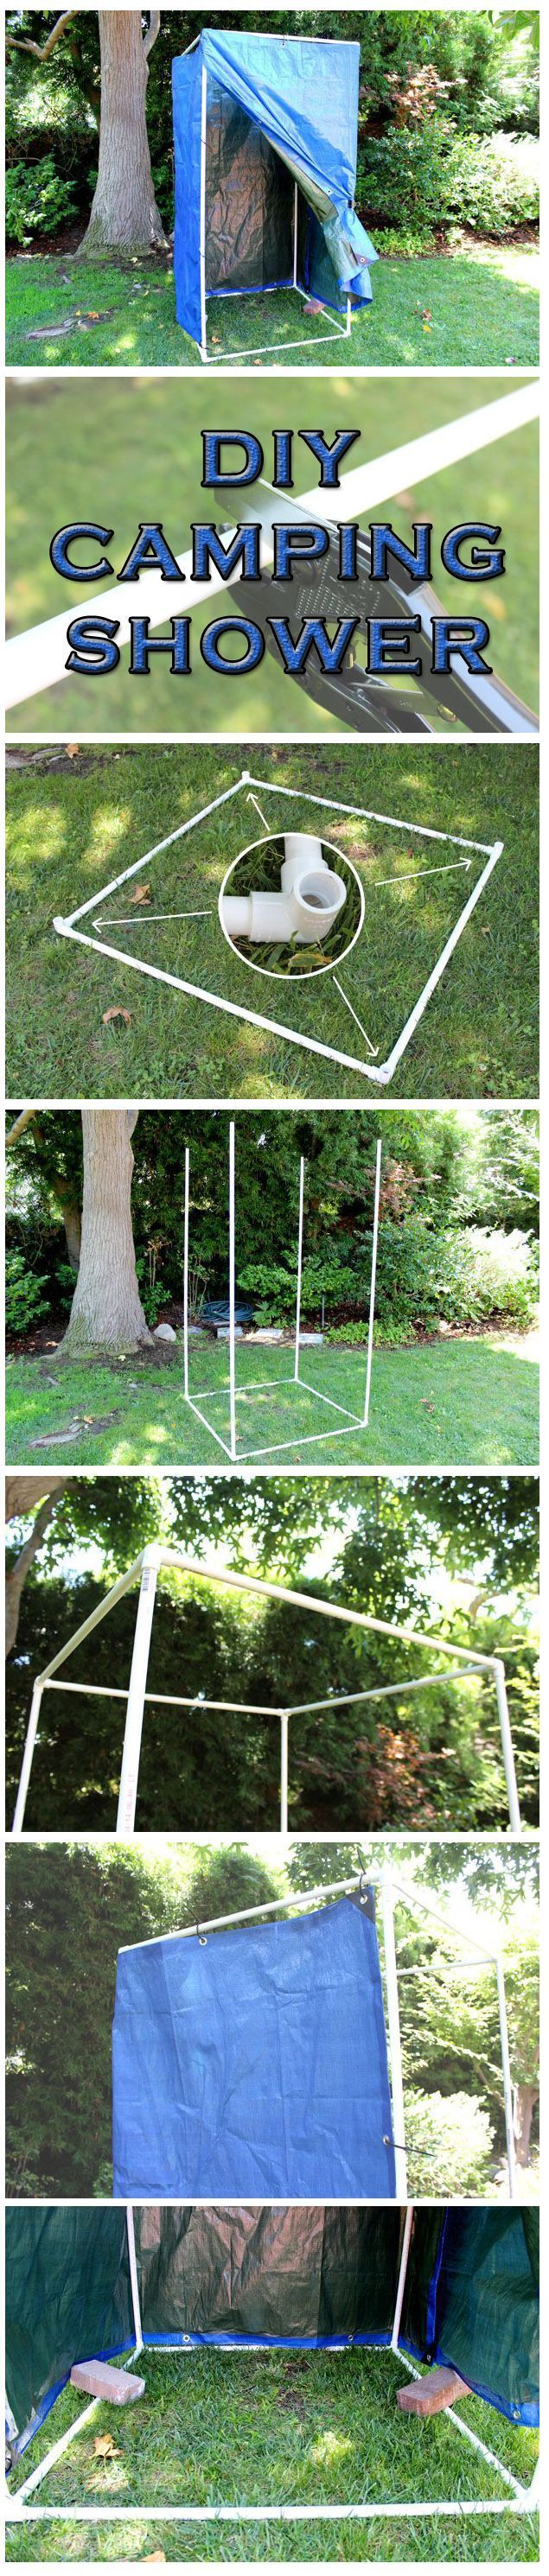 Nice ** How to Make a Homemade Camping Shower | eHow